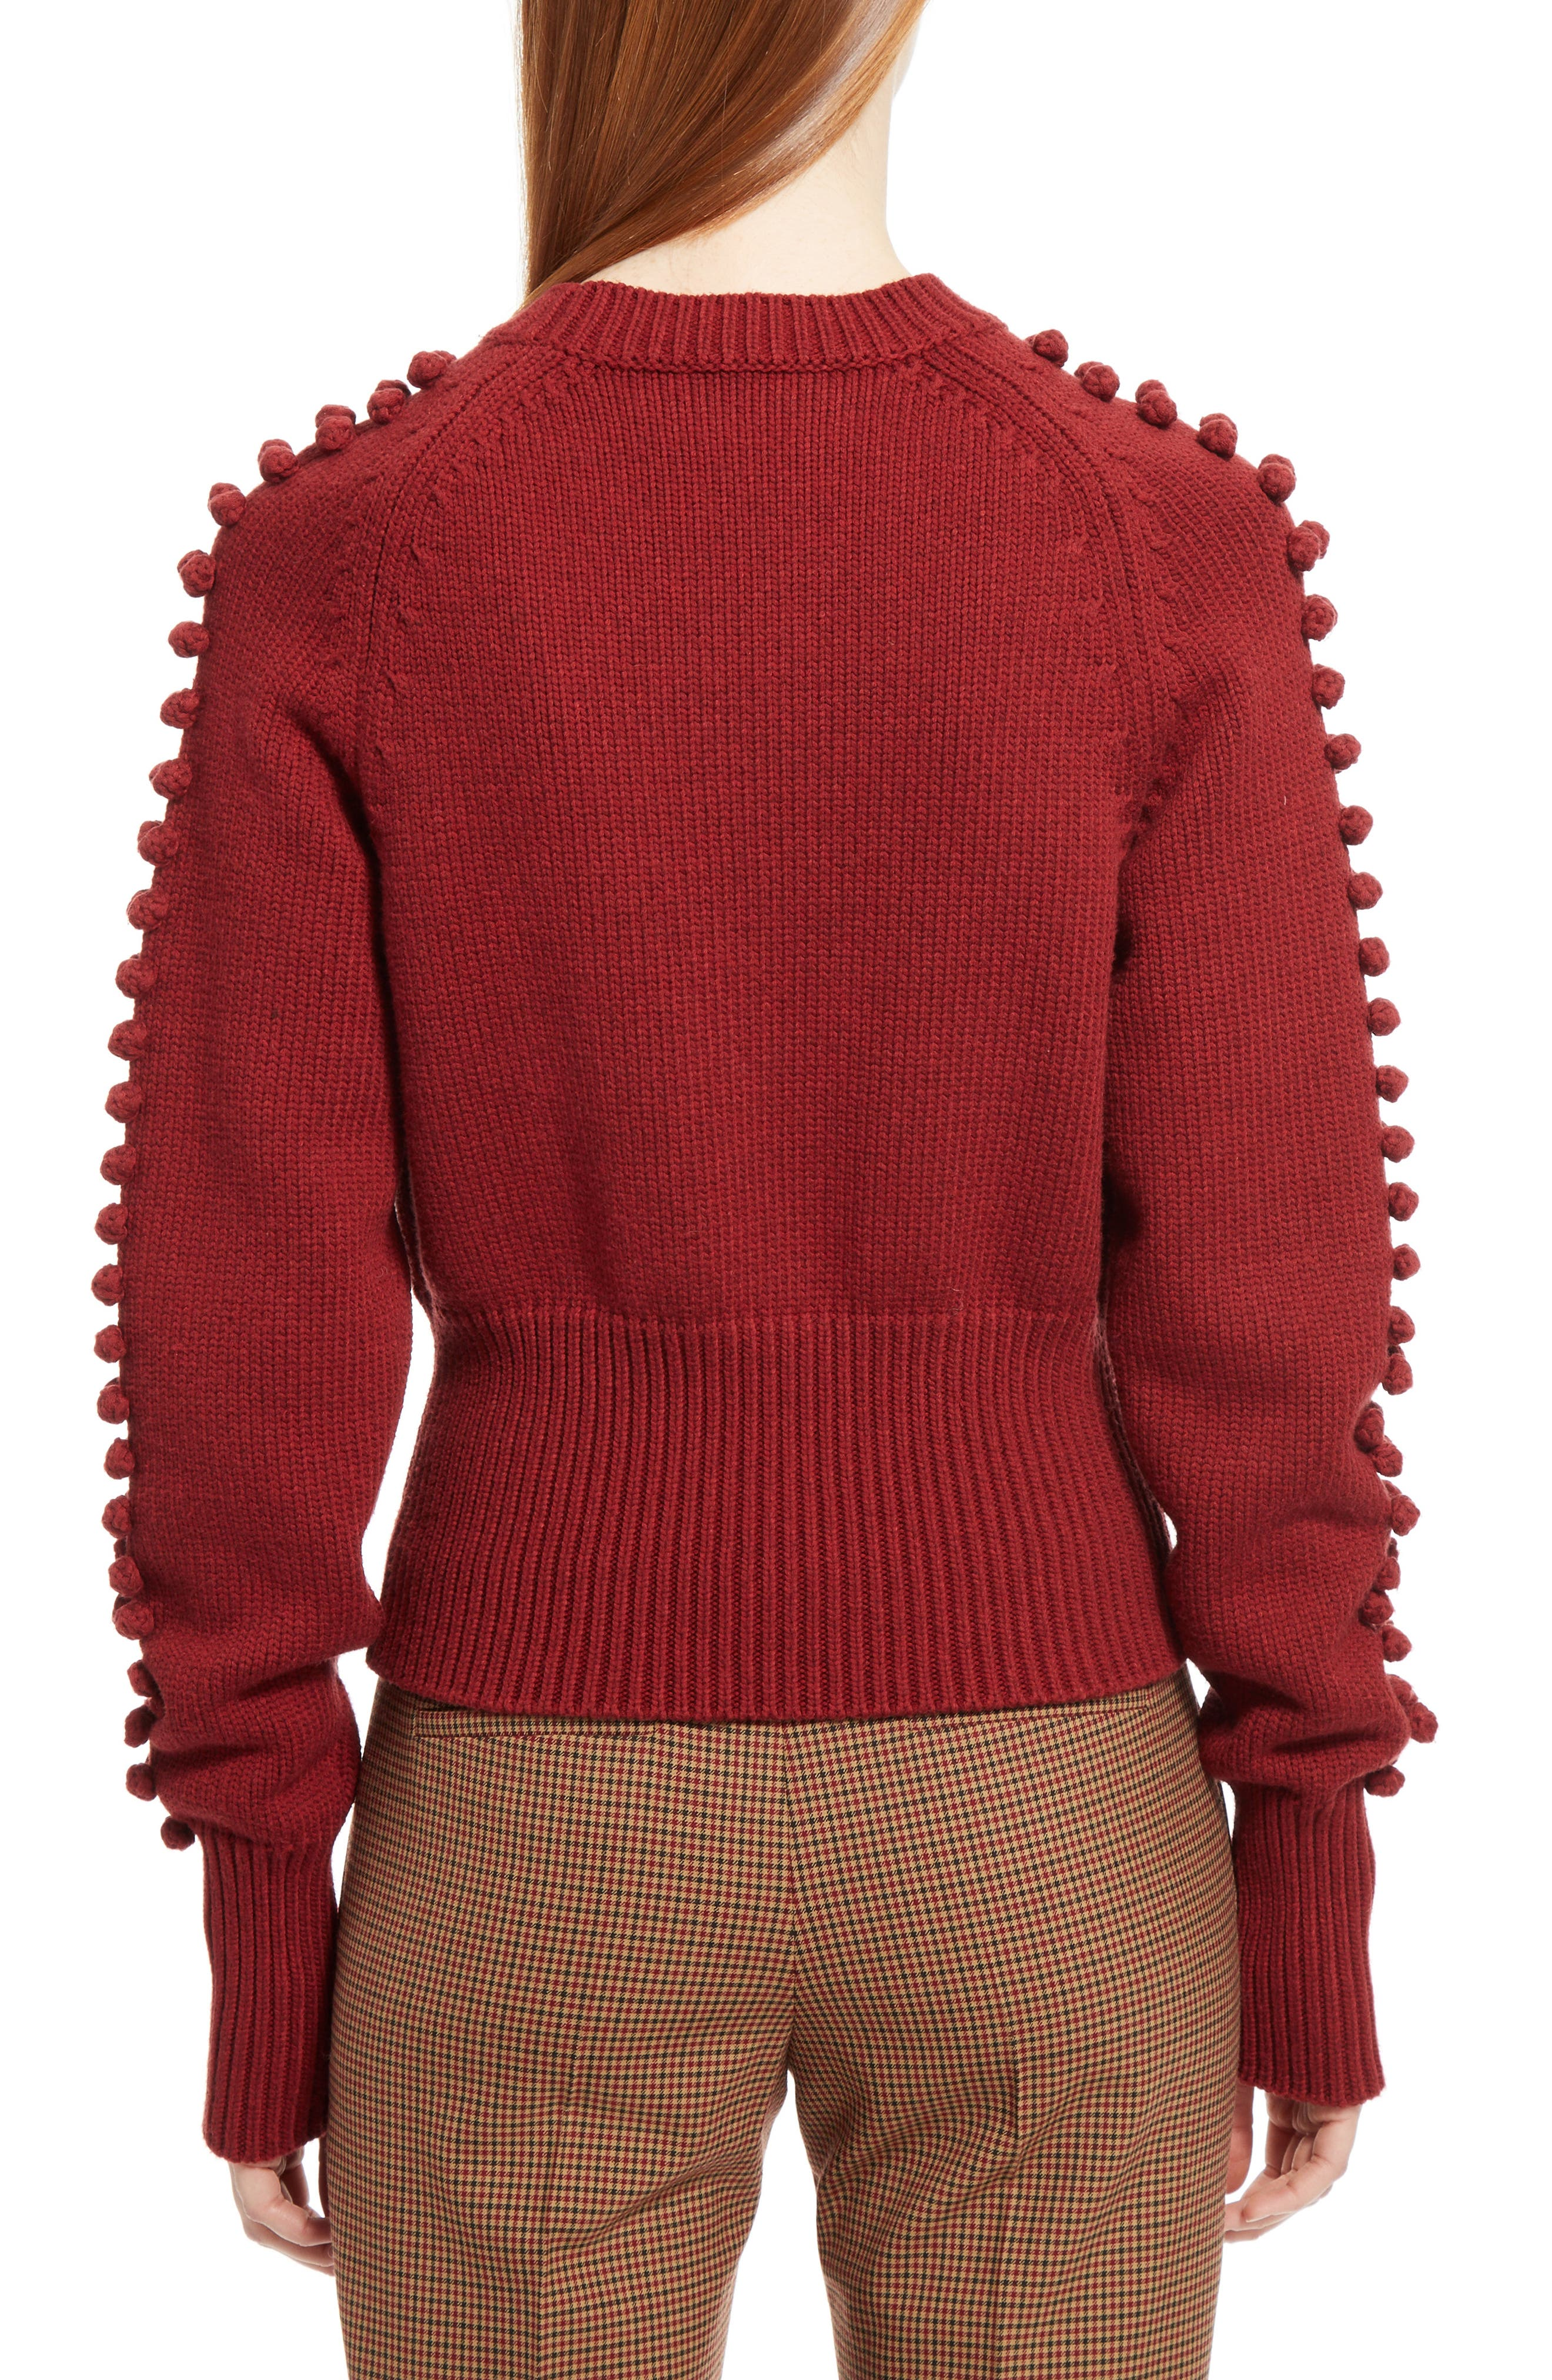 Bobble Knit Sweater,                             Alternate thumbnail 2, color,                             Ginger Red